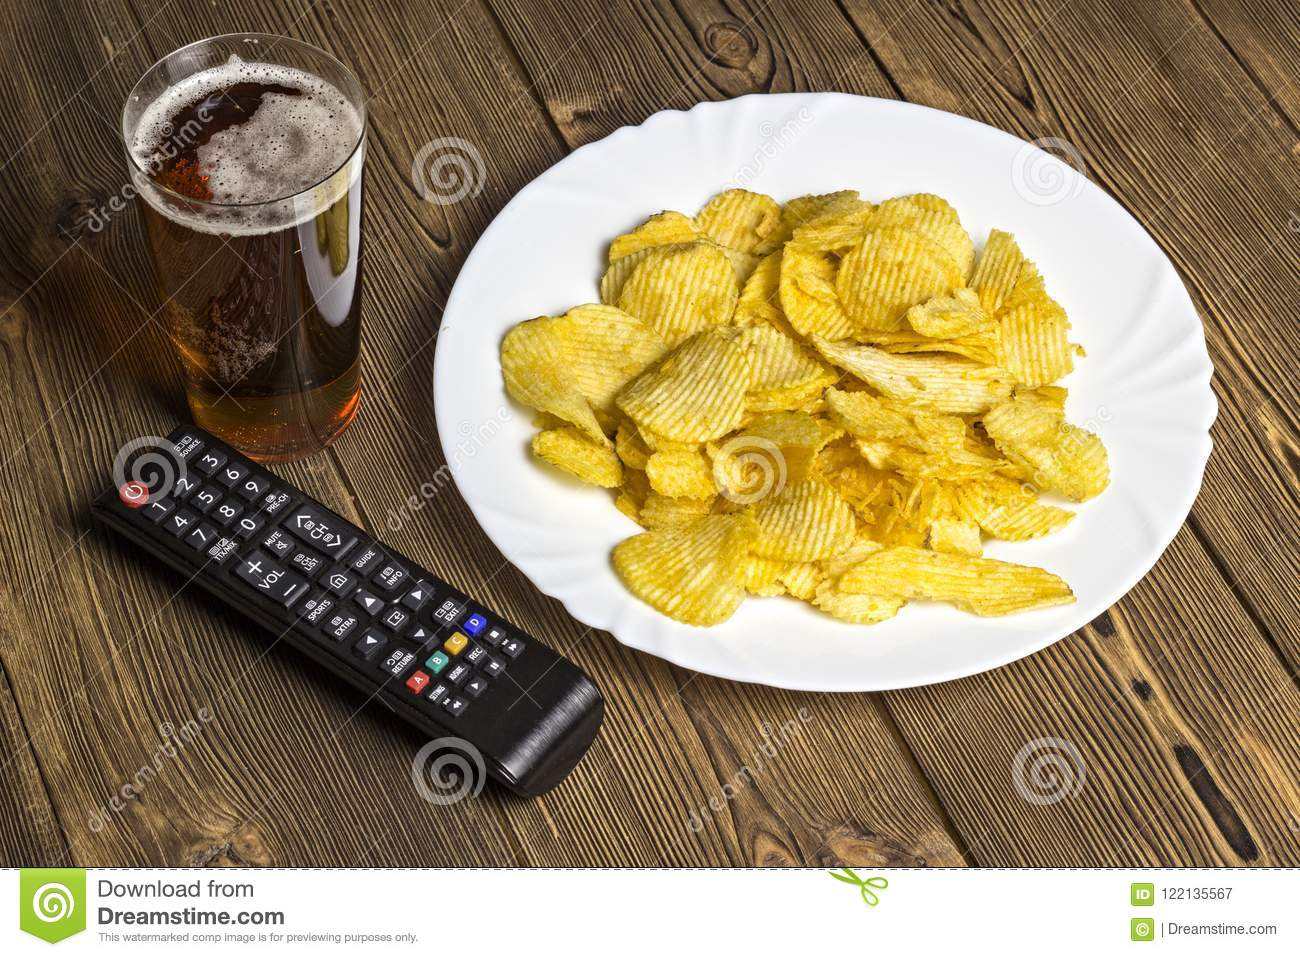 Chips with beer and TV remote control on a wooden background remote